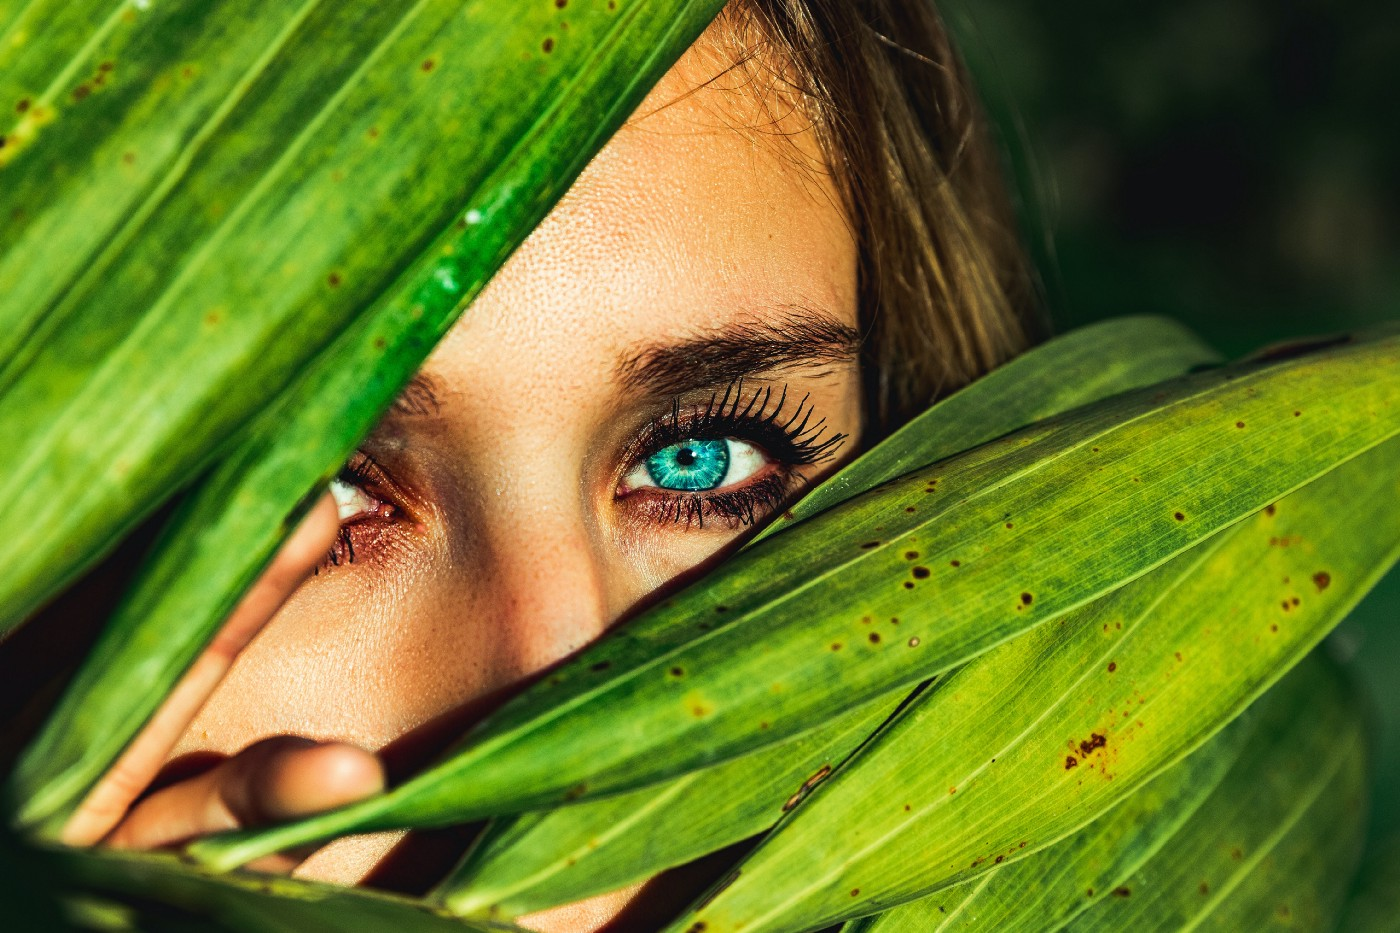 Woman with blue eyes hiding behind green foliage and looking directly at the camera. Her face is partially covered with greenery. Her eyes look turquoise blue. She has dark brown eyebrows.